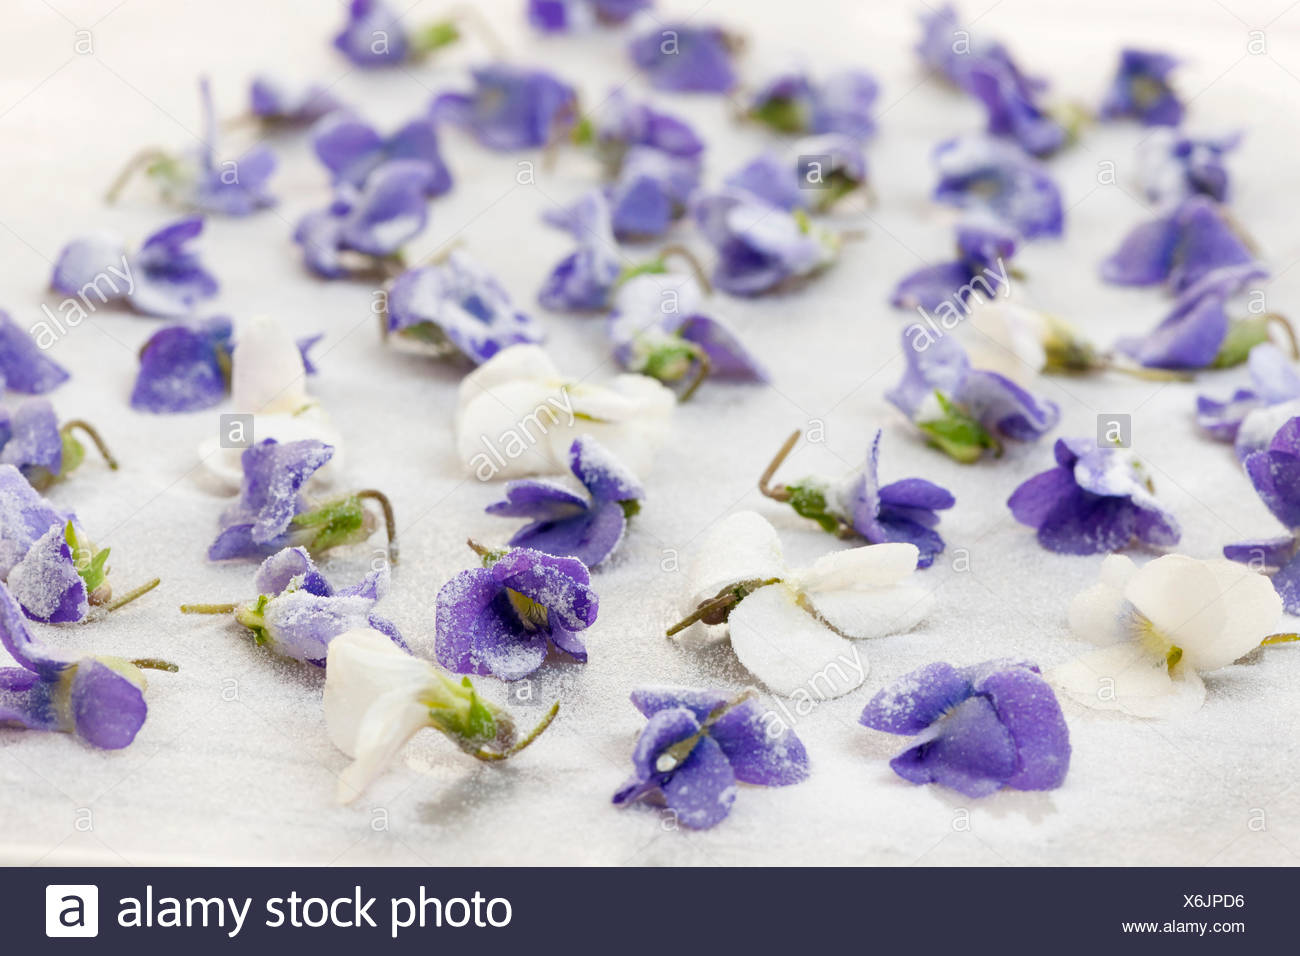 Candied Sugared Violet Flowers Drying On Parchment Paper Stock Photo